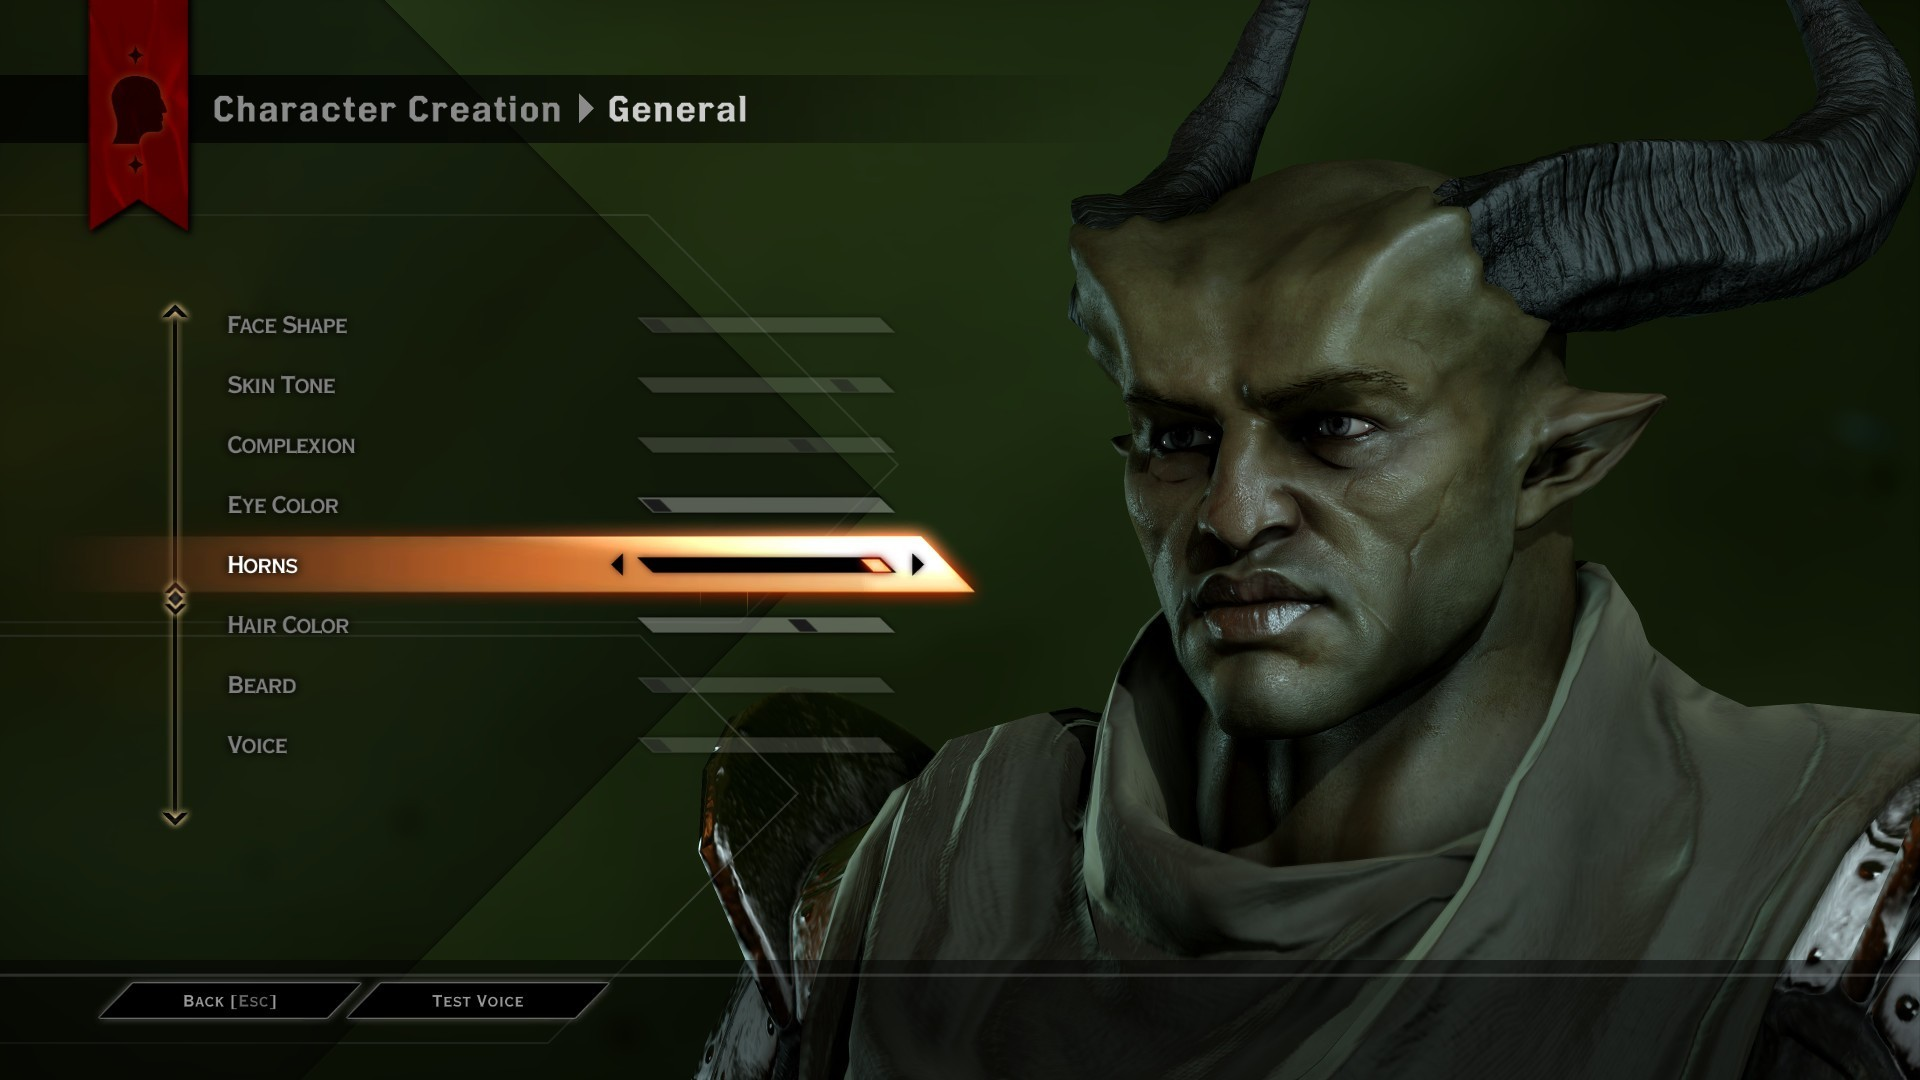 Dragon Age Inquisition Trailer Compresses Character Creation Into 3 Minute Feature